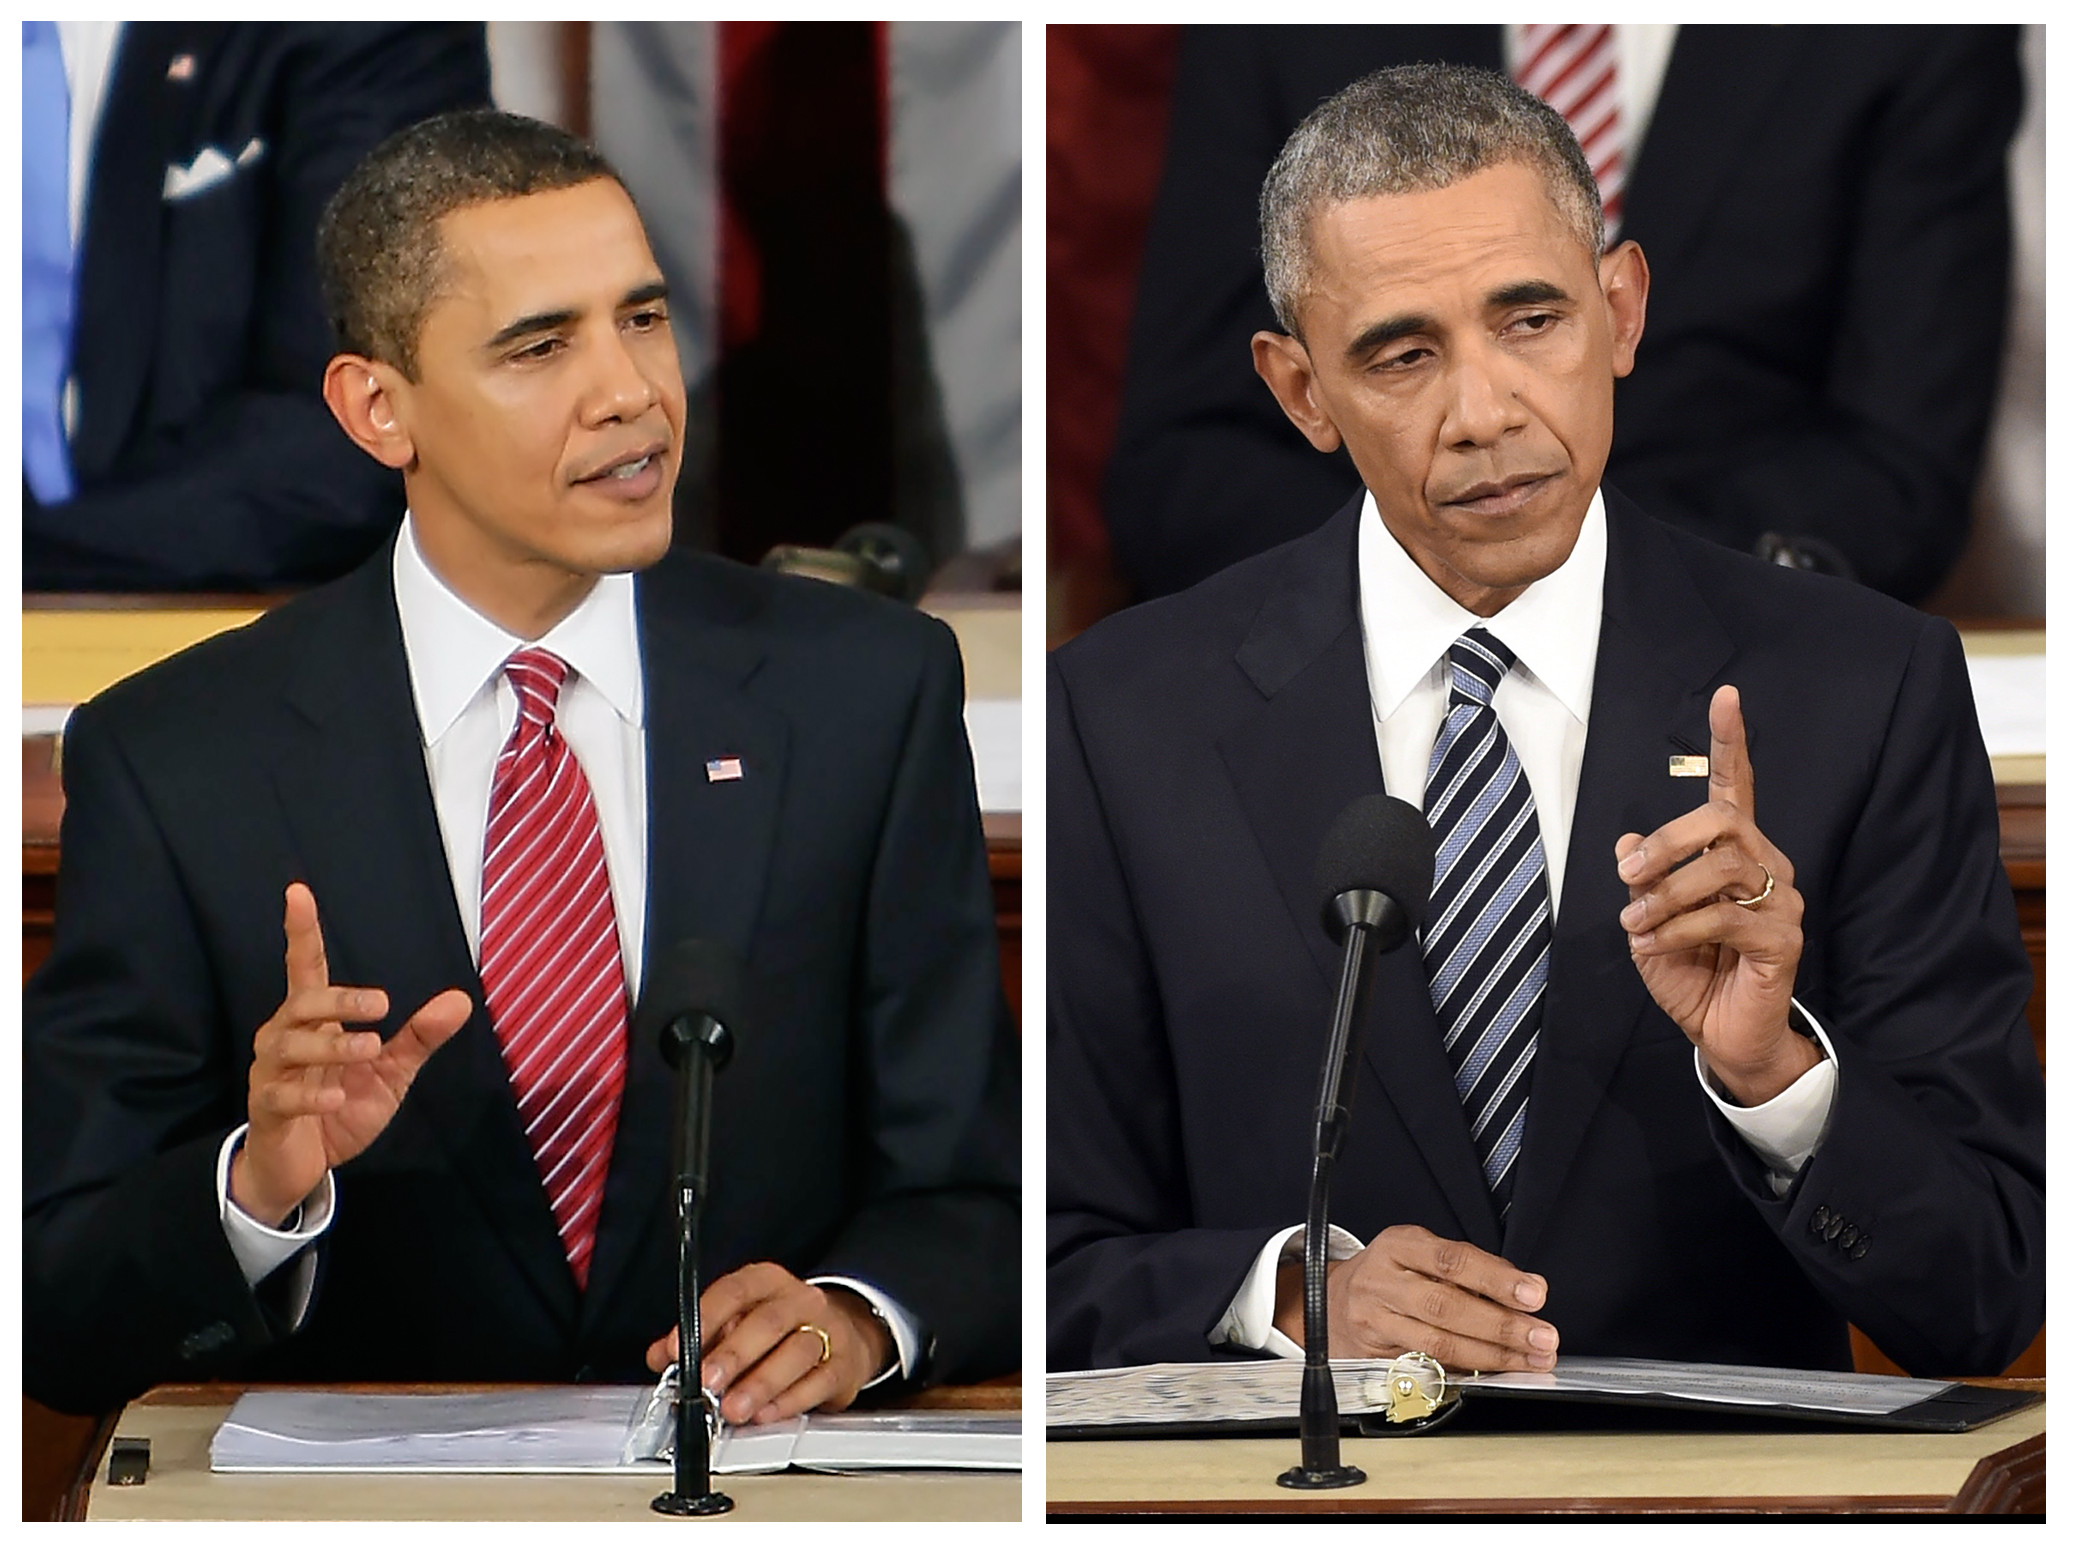 President Barack Obama in his 2009 address to a joint session of congress, left, and in the 2016 State of the Union address, right.